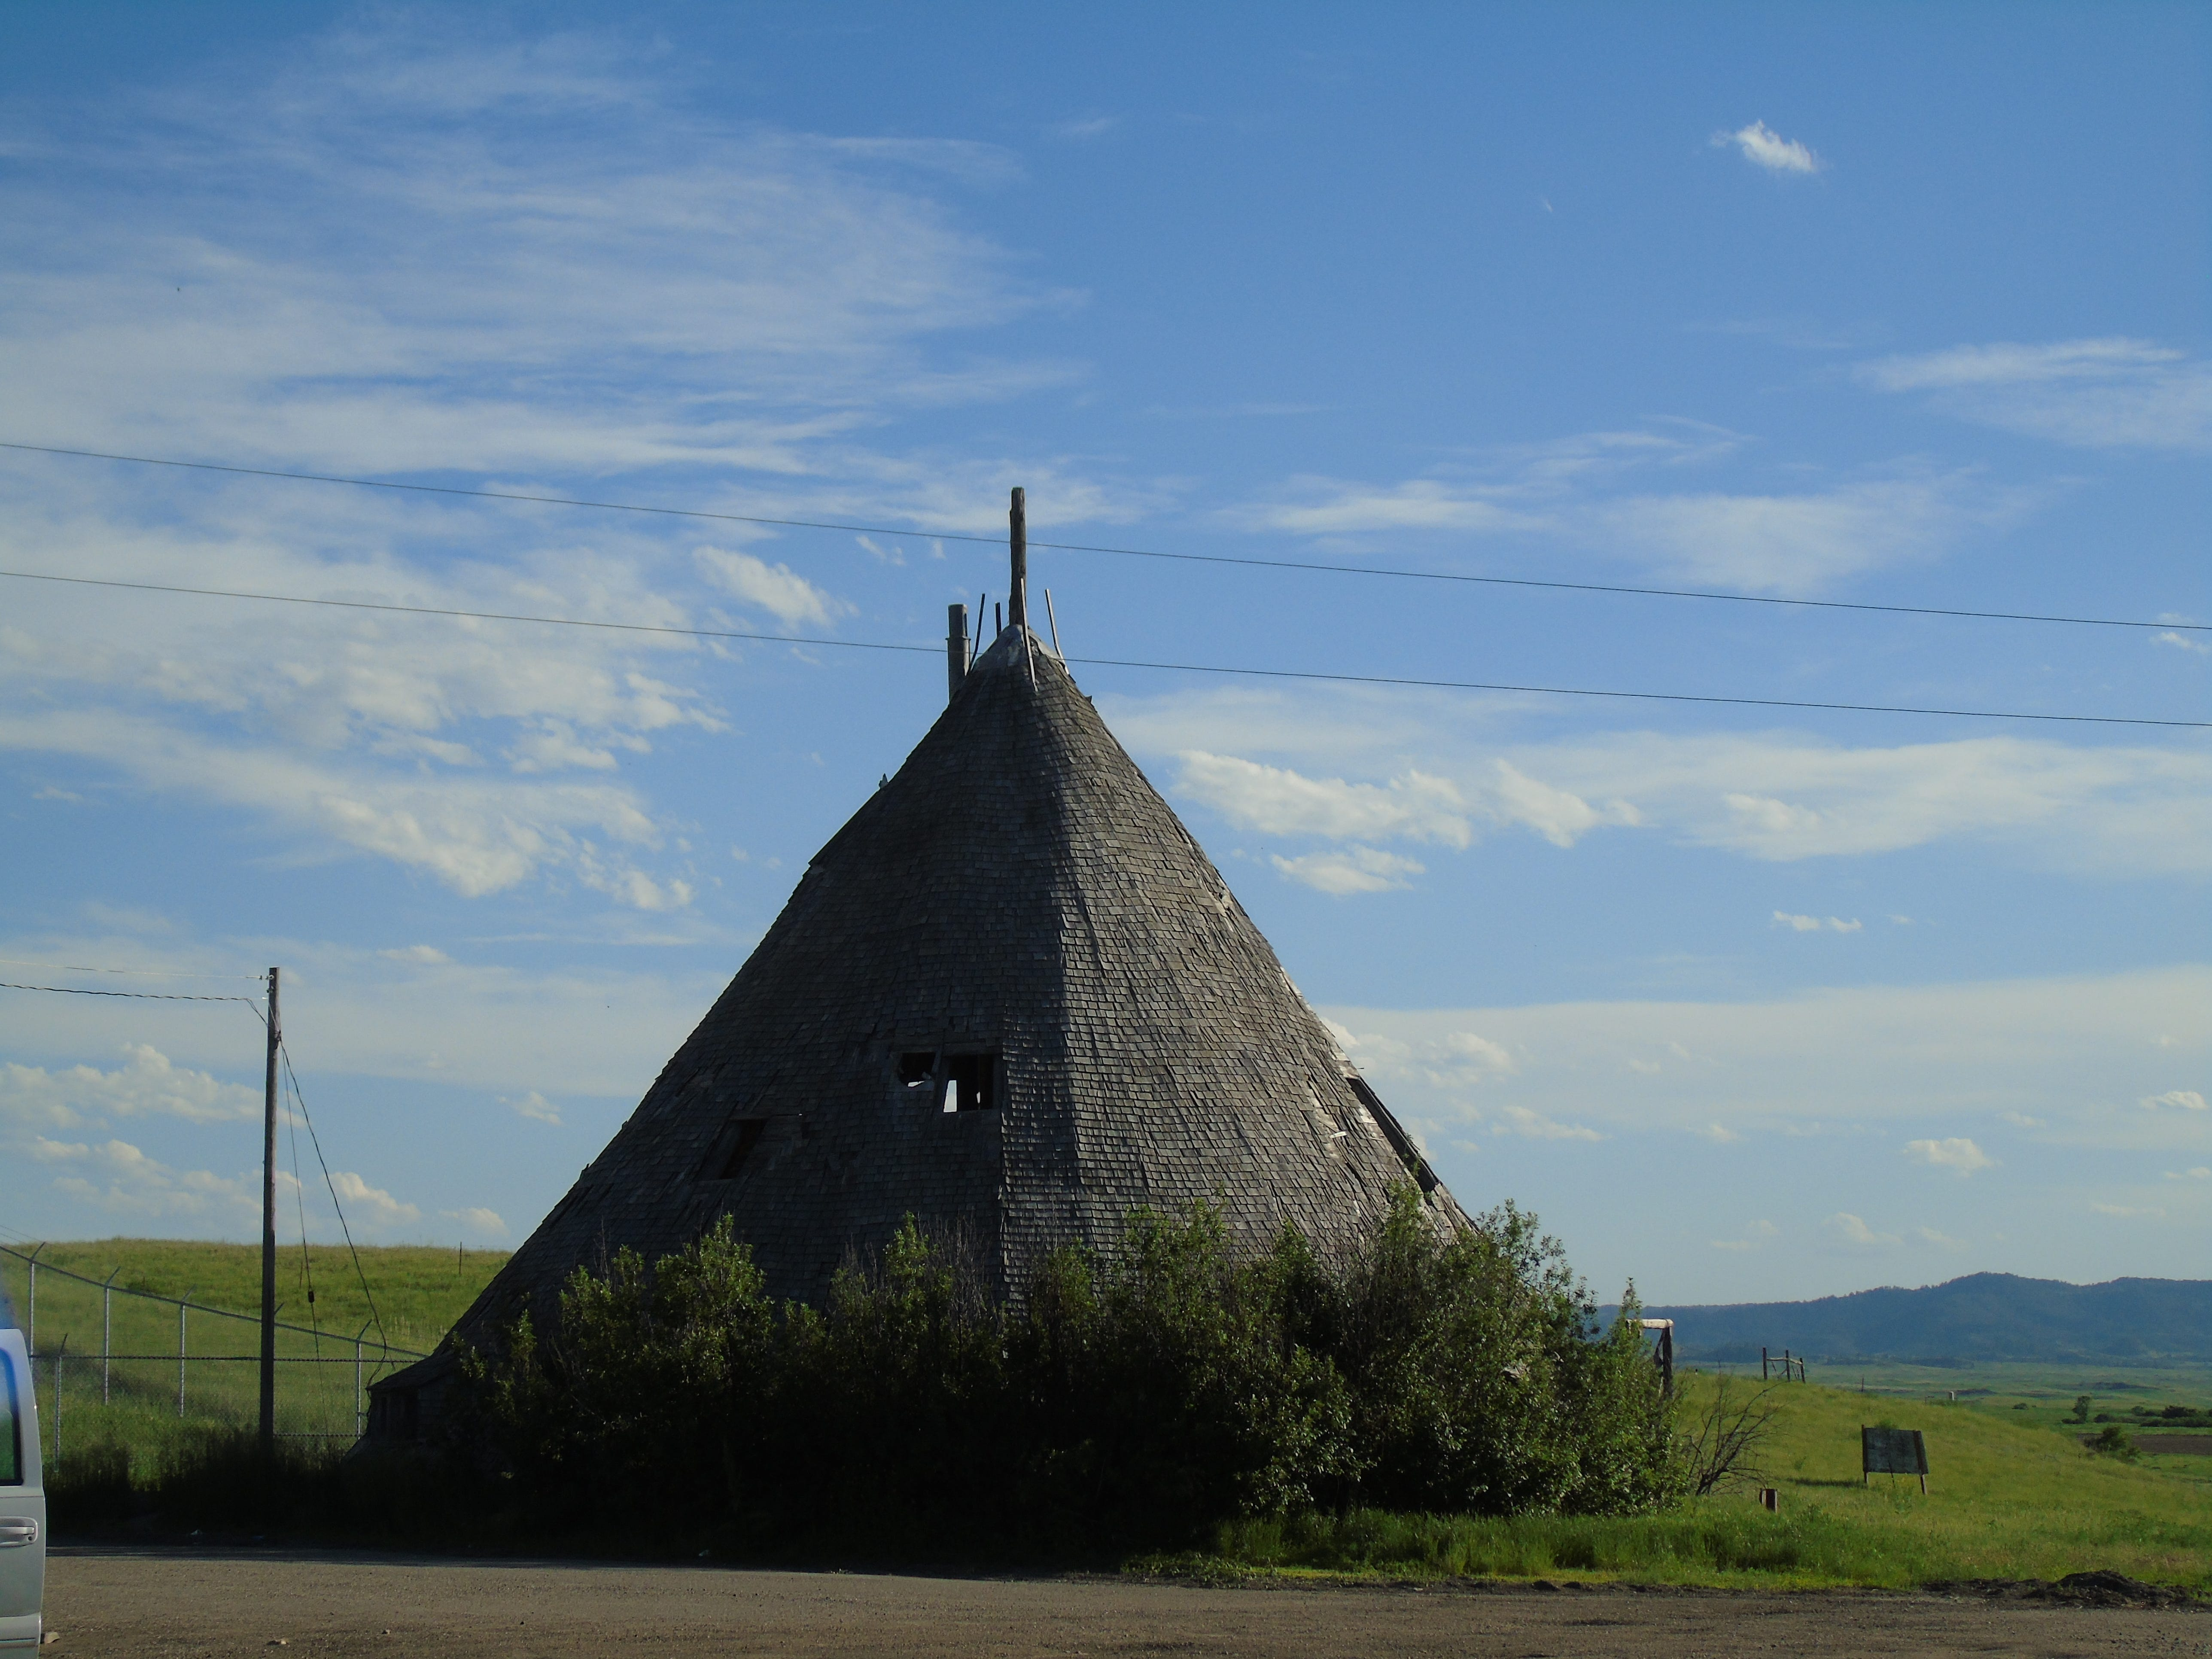 A wooden teepee in Busby on the Northern Cheyenne Indian Reservation